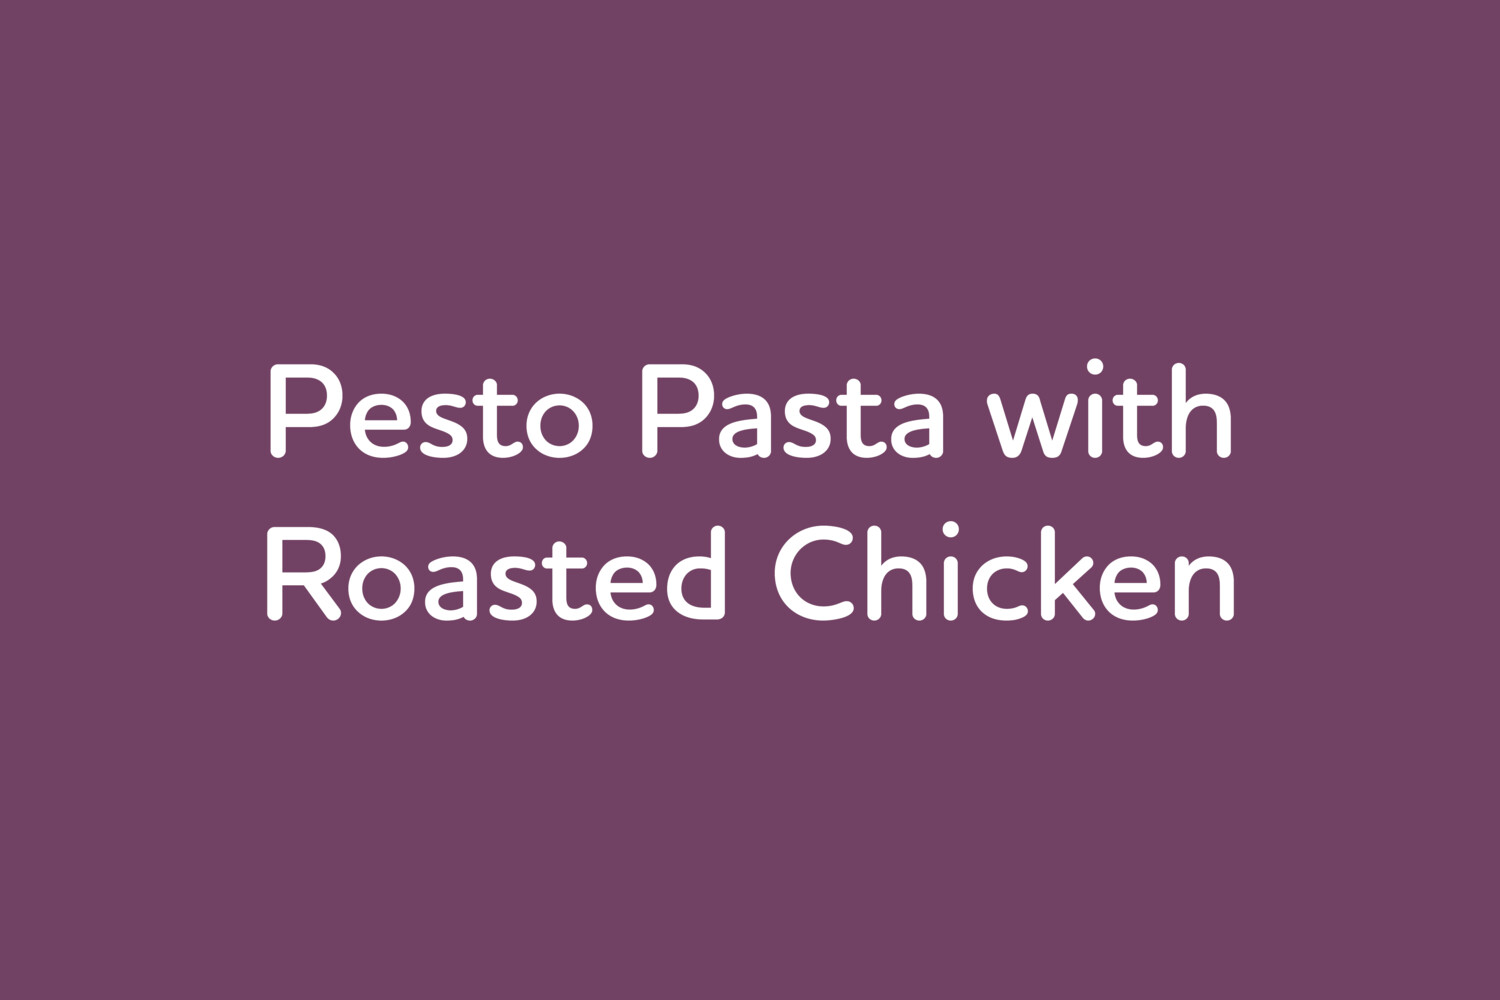 May 13: Pesto Pasta with Roasted Chicken